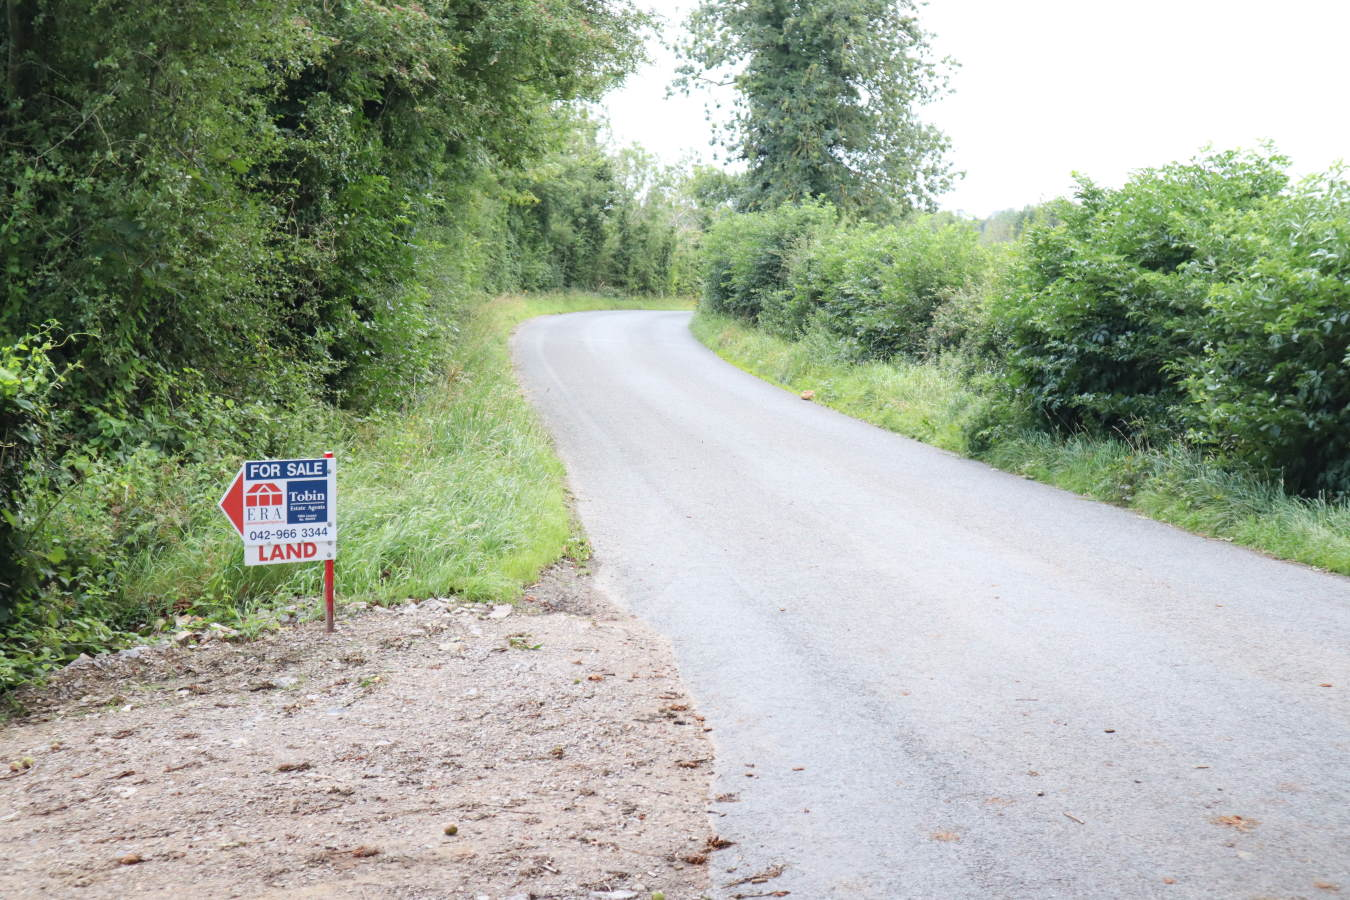 On The Market from ERA Tobin Estate Agents: 20.48 hectares (50.6 acres) Non Residential Farm With Slatted Cattle Shed Co. Monaghan